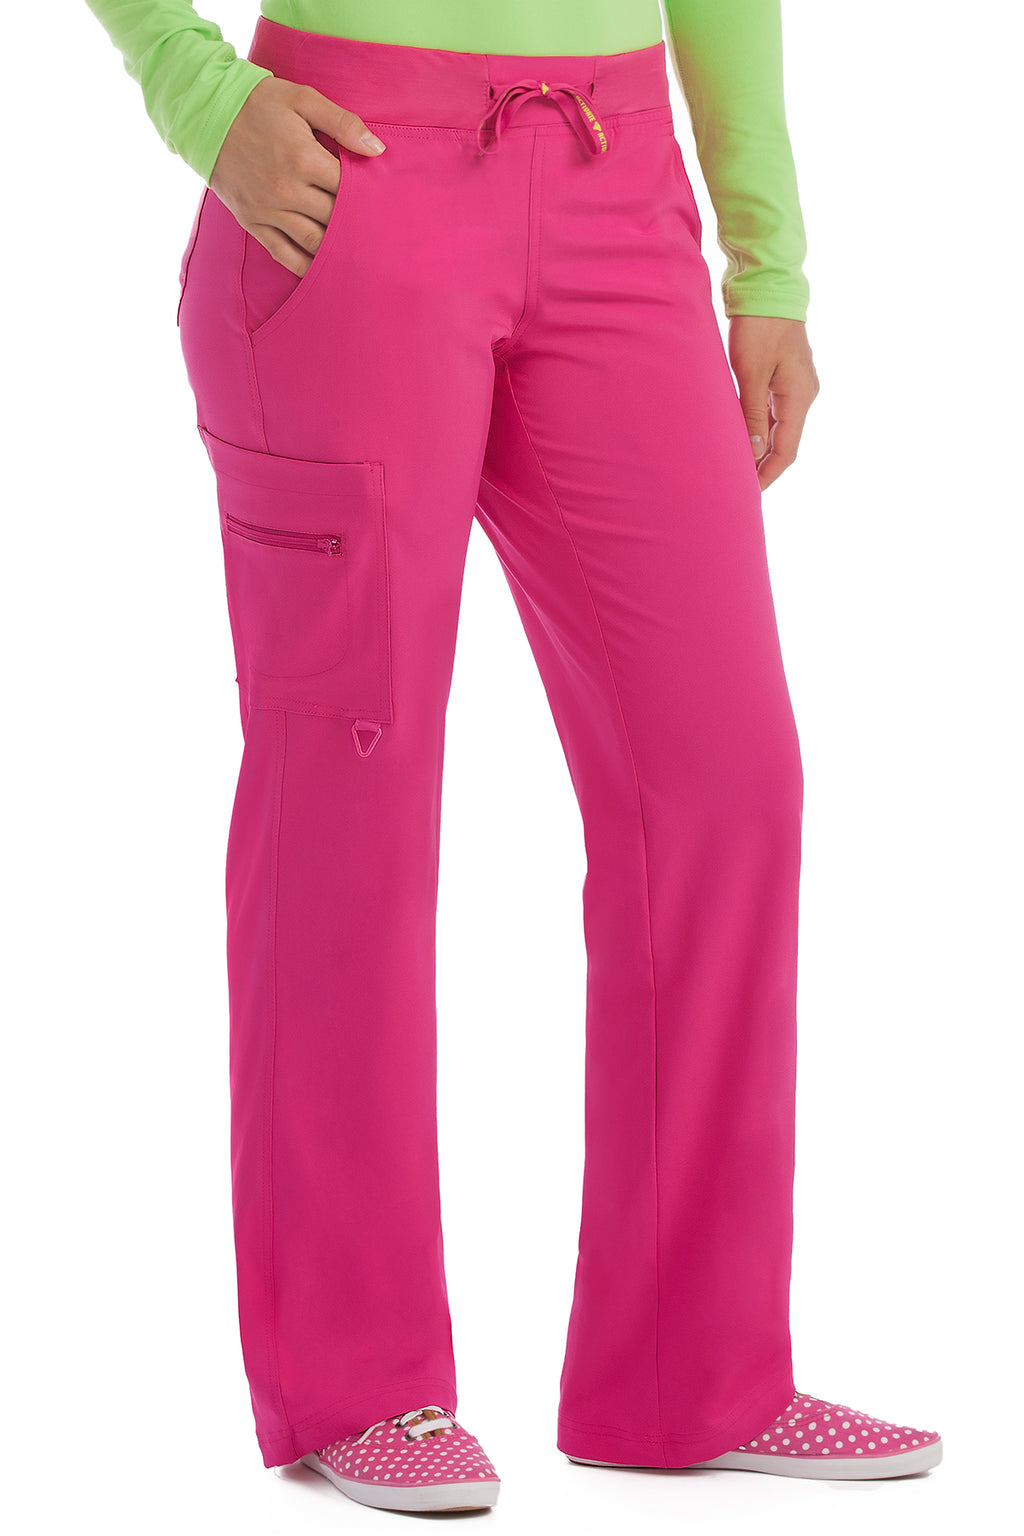 Med Couture 8747 Yoga 1 Cargo Pocket Pant